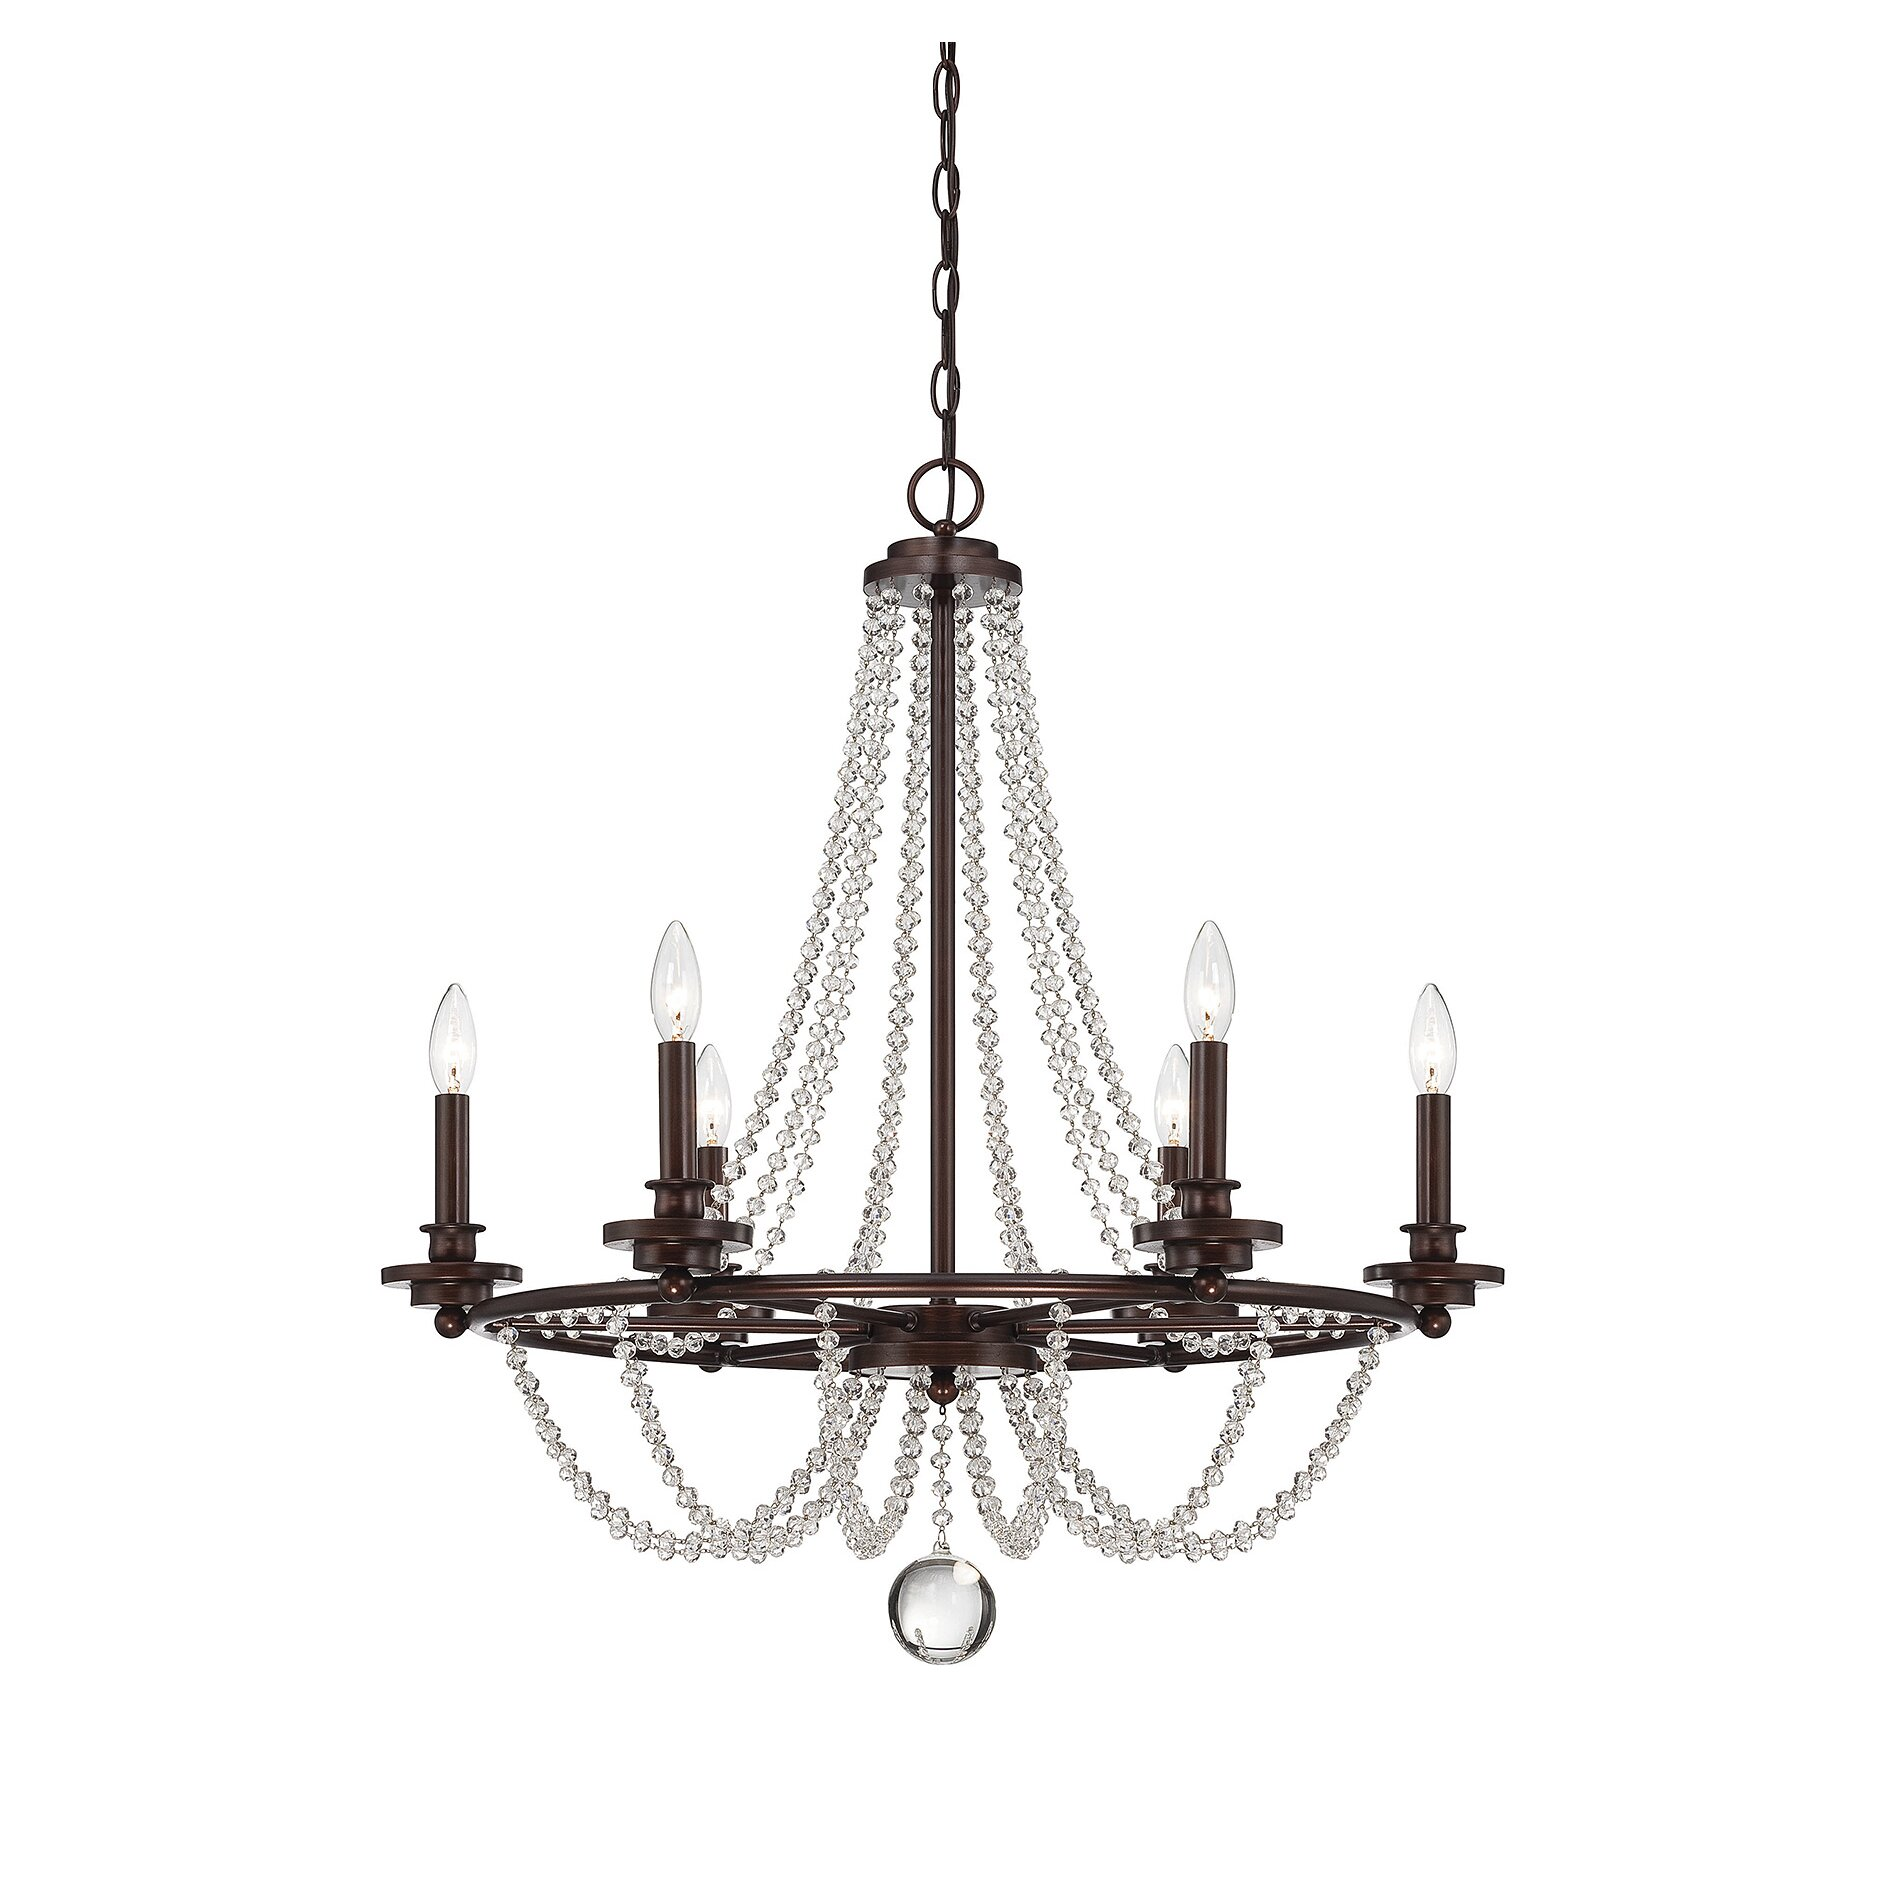 Savoy House Byanca 6 Light Candle Chandelier & Reviews